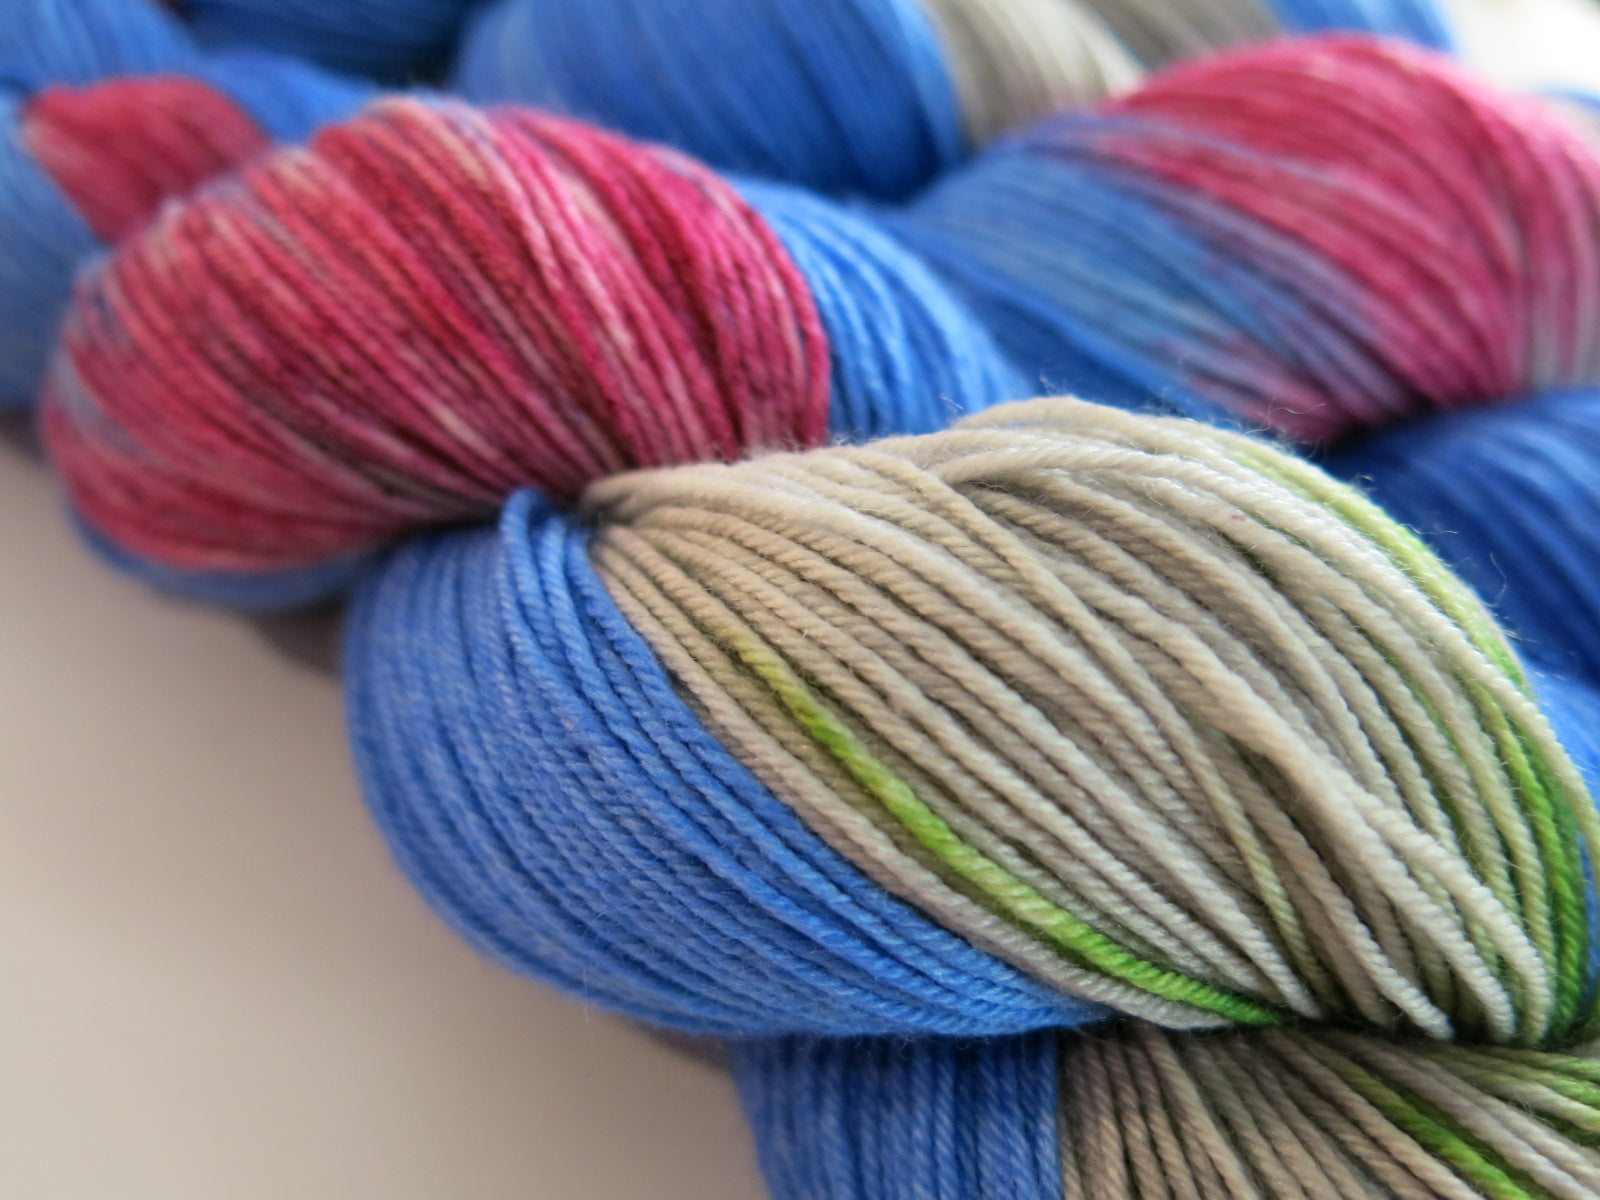 indie dyed sock yarn skeins in blue, pink, green and grey